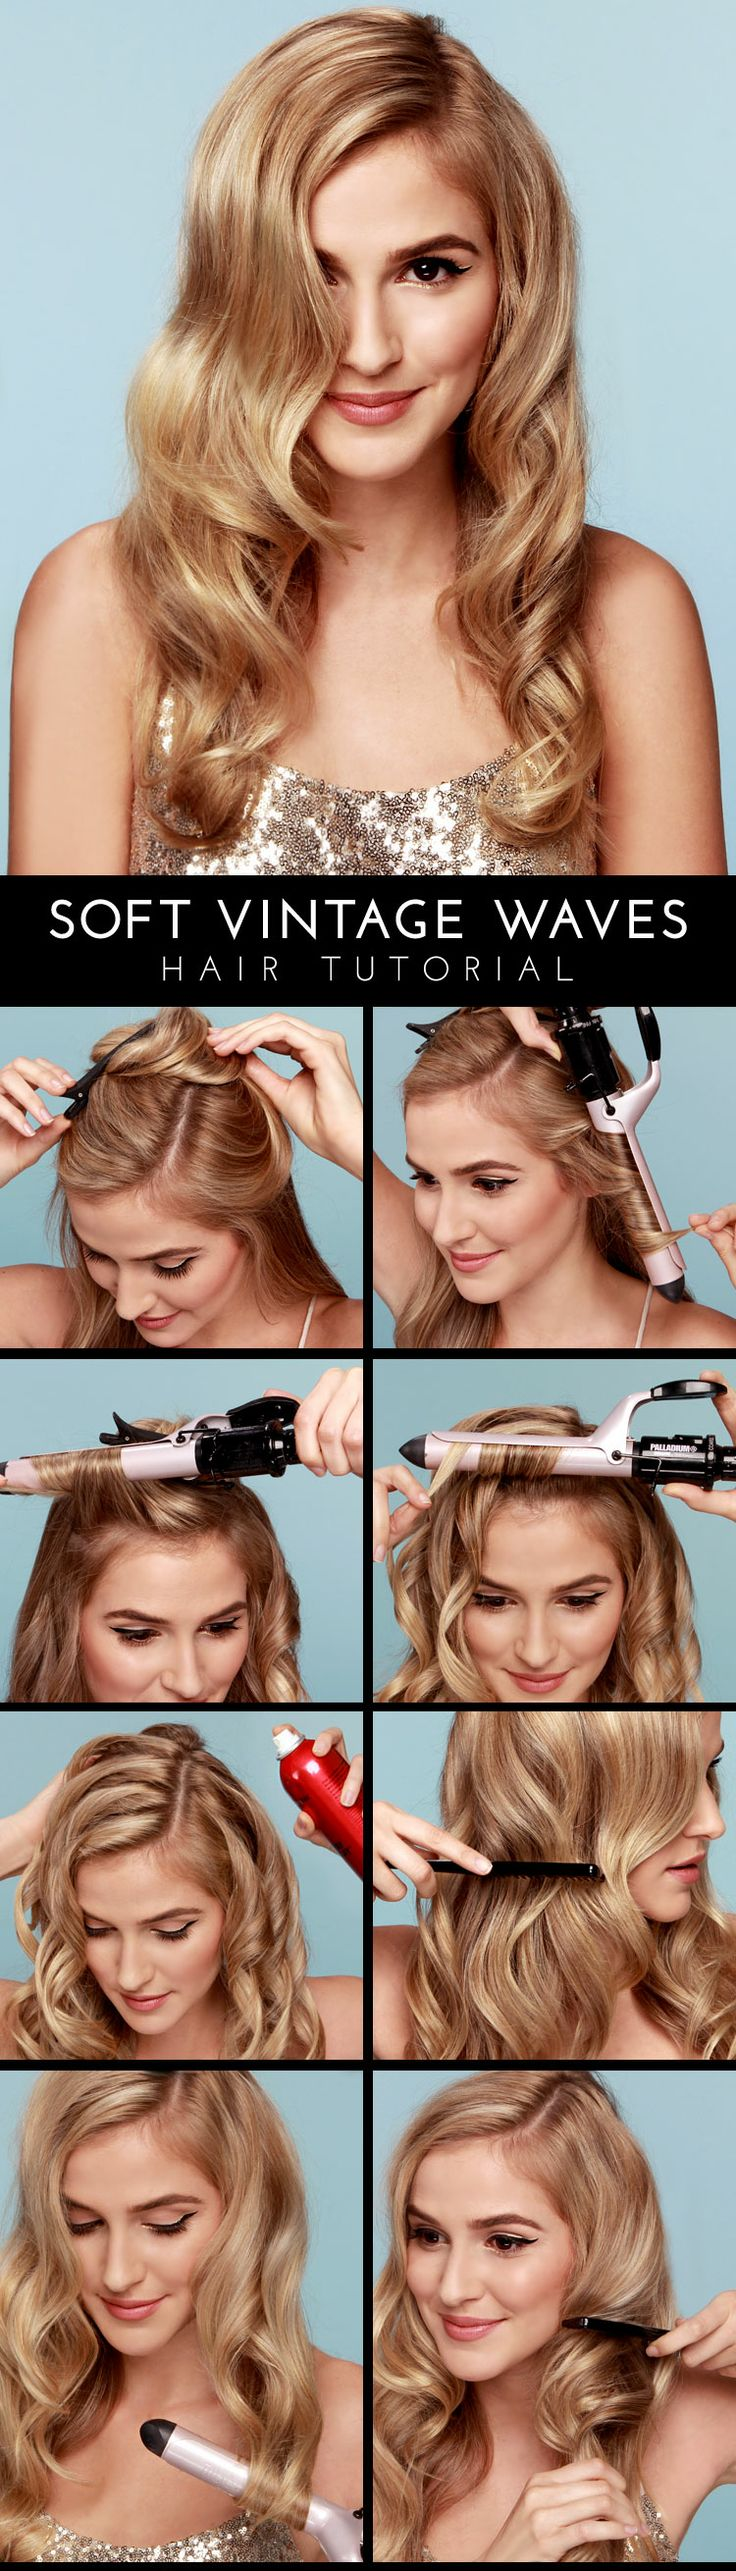 Soft-Vintage-Waves-Hair-Tutorial